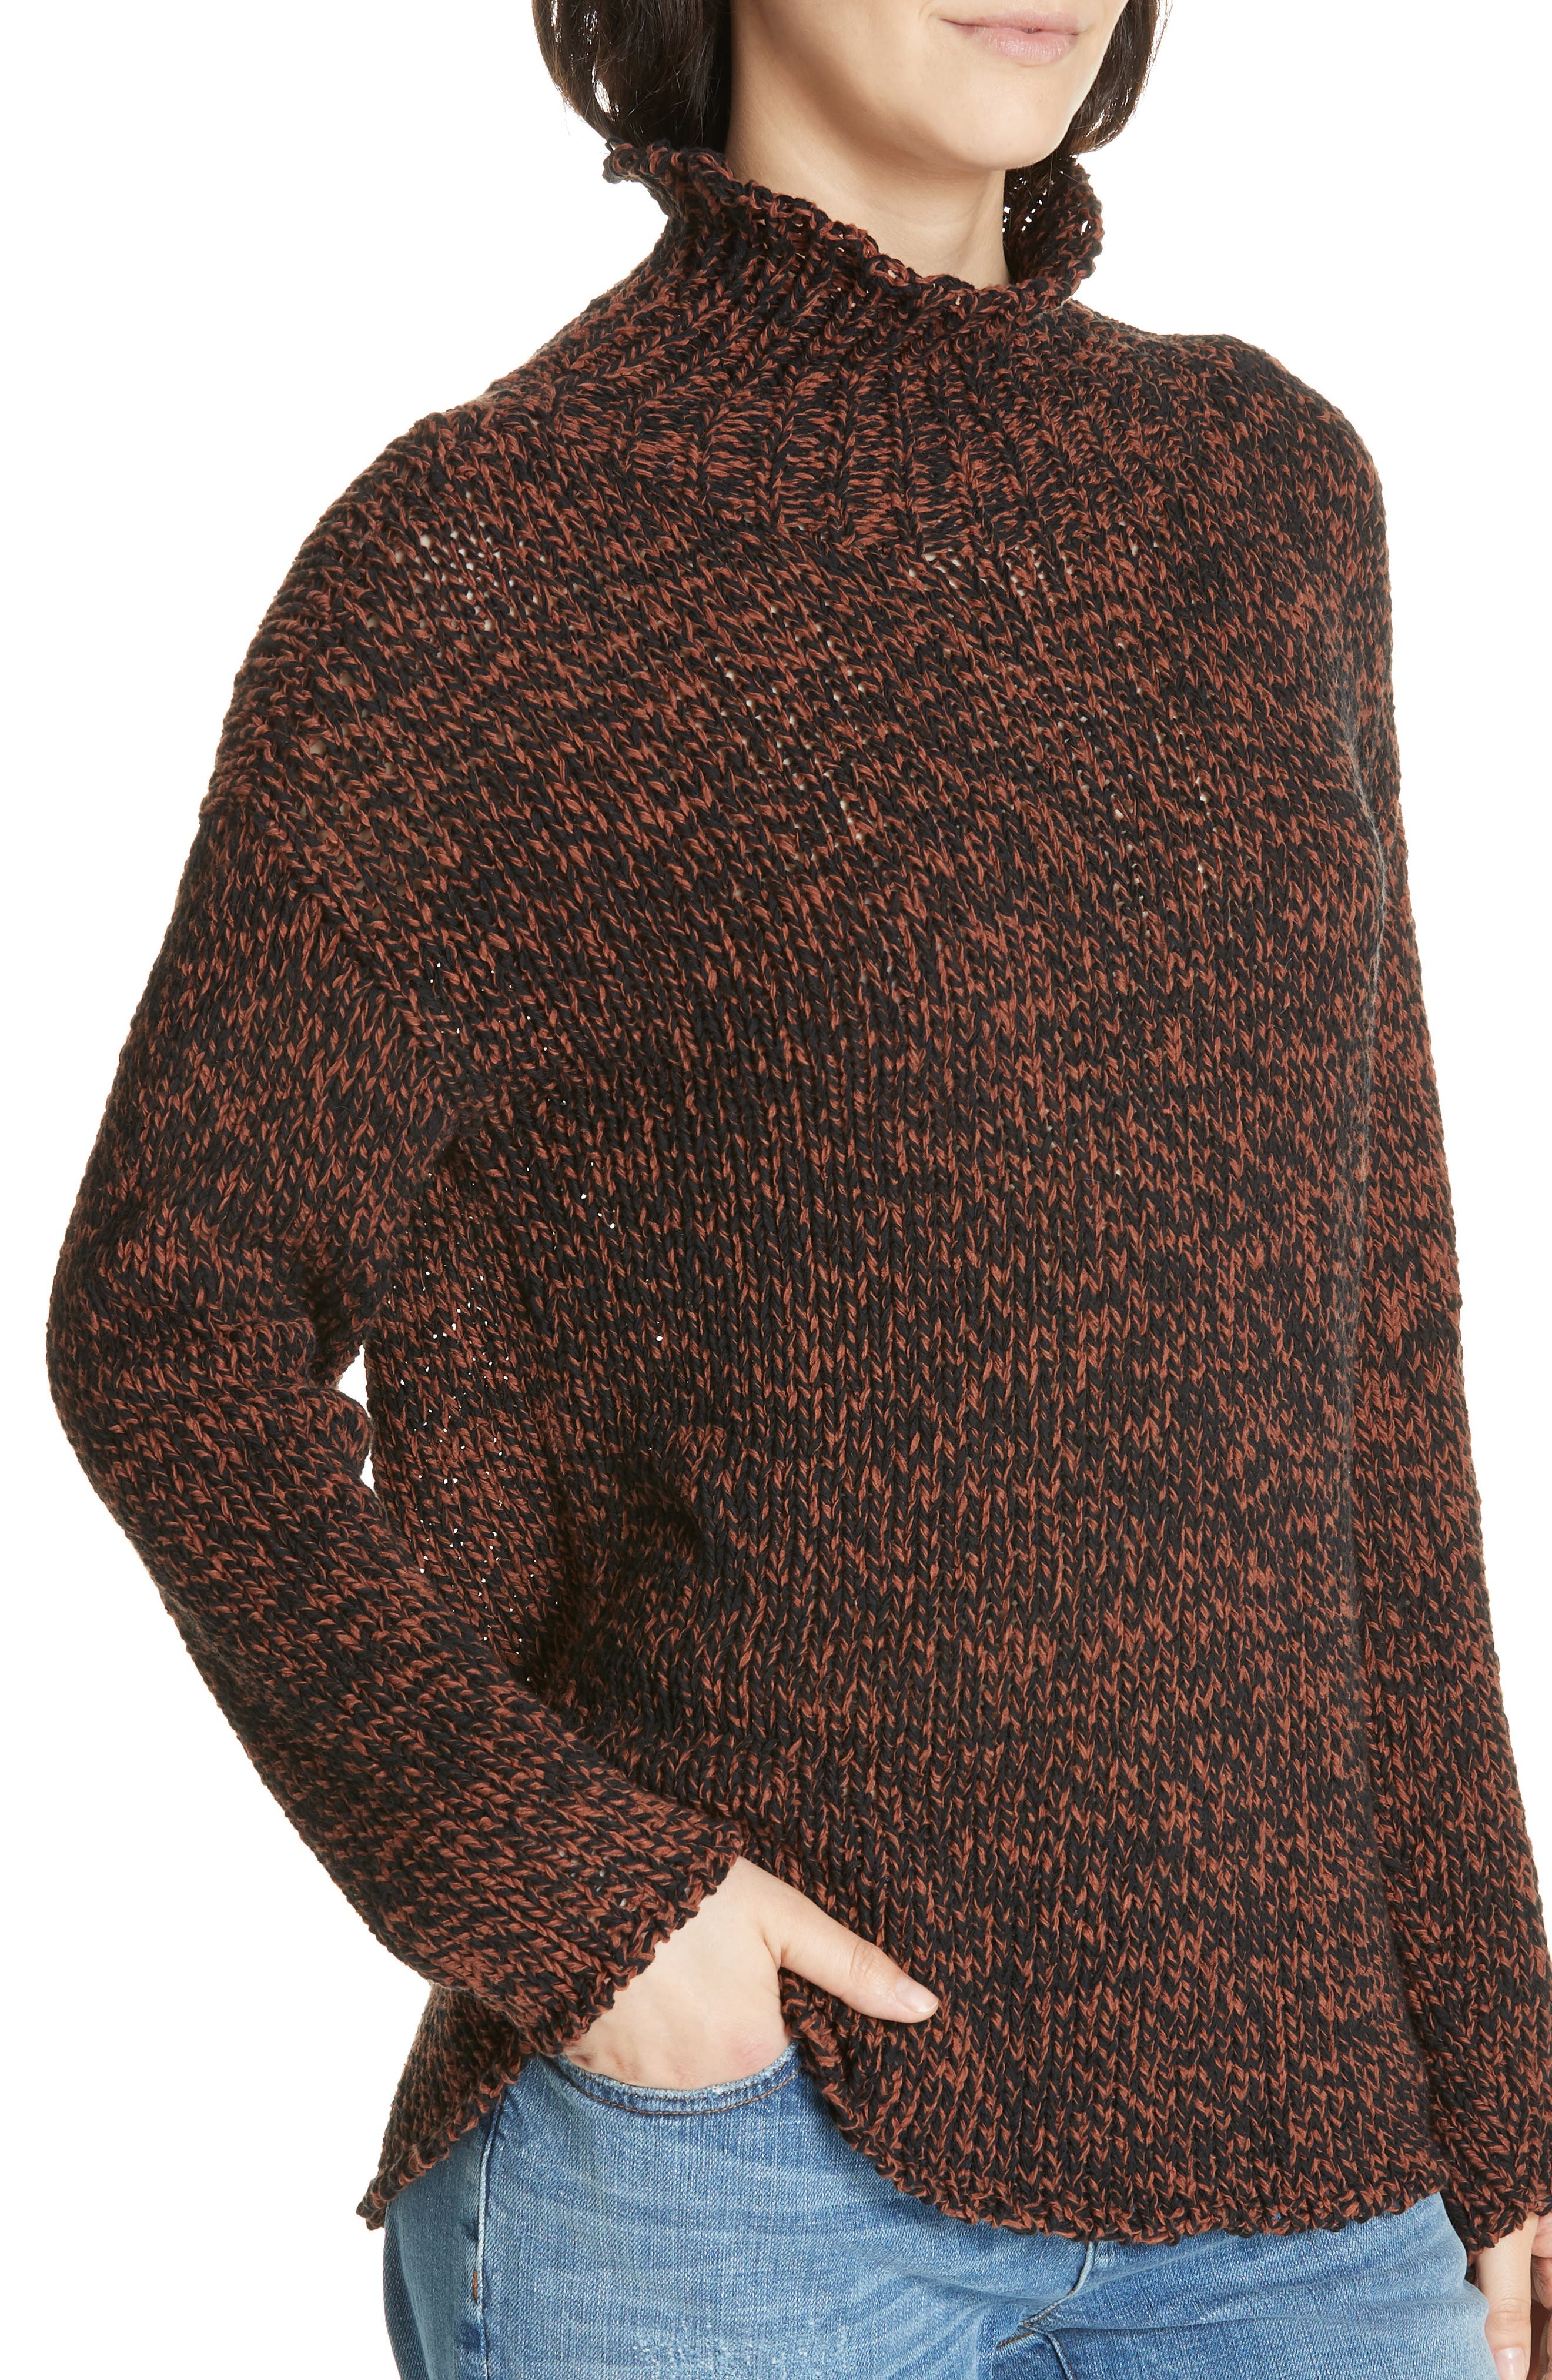 Marled Organic Cotton Blend Sweater,                             Alternate thumbnail 4, color,                             NUTMEG